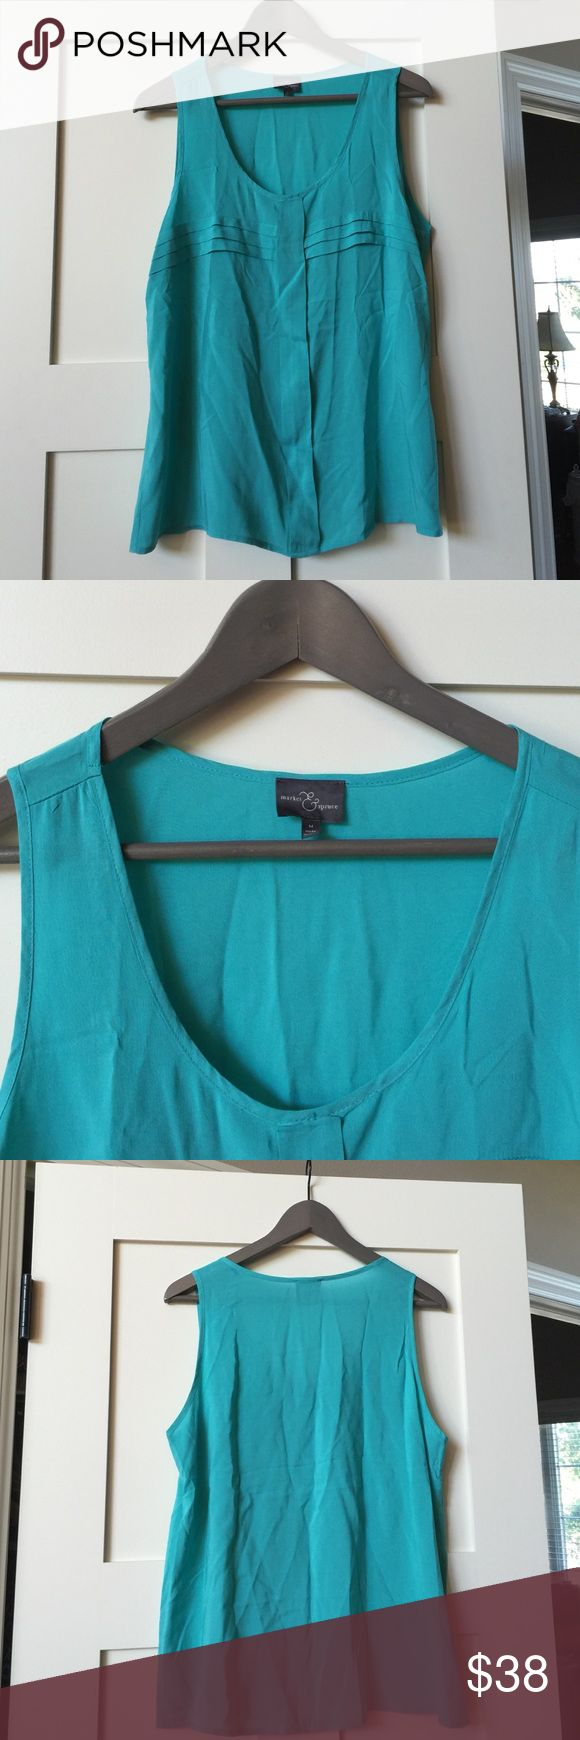 Market & Spruce Stitch Fix szM sleeveless blouse Market & Spruce a Stitch Fix brand SzM turquoise sleeveless blouse.  Has cute front pleating detail.  Would look perfect with skinny jeans and heels or flats.  Comes from free and smoke free home. Market & Spruce a Stitch Fix brand Tops Blouses